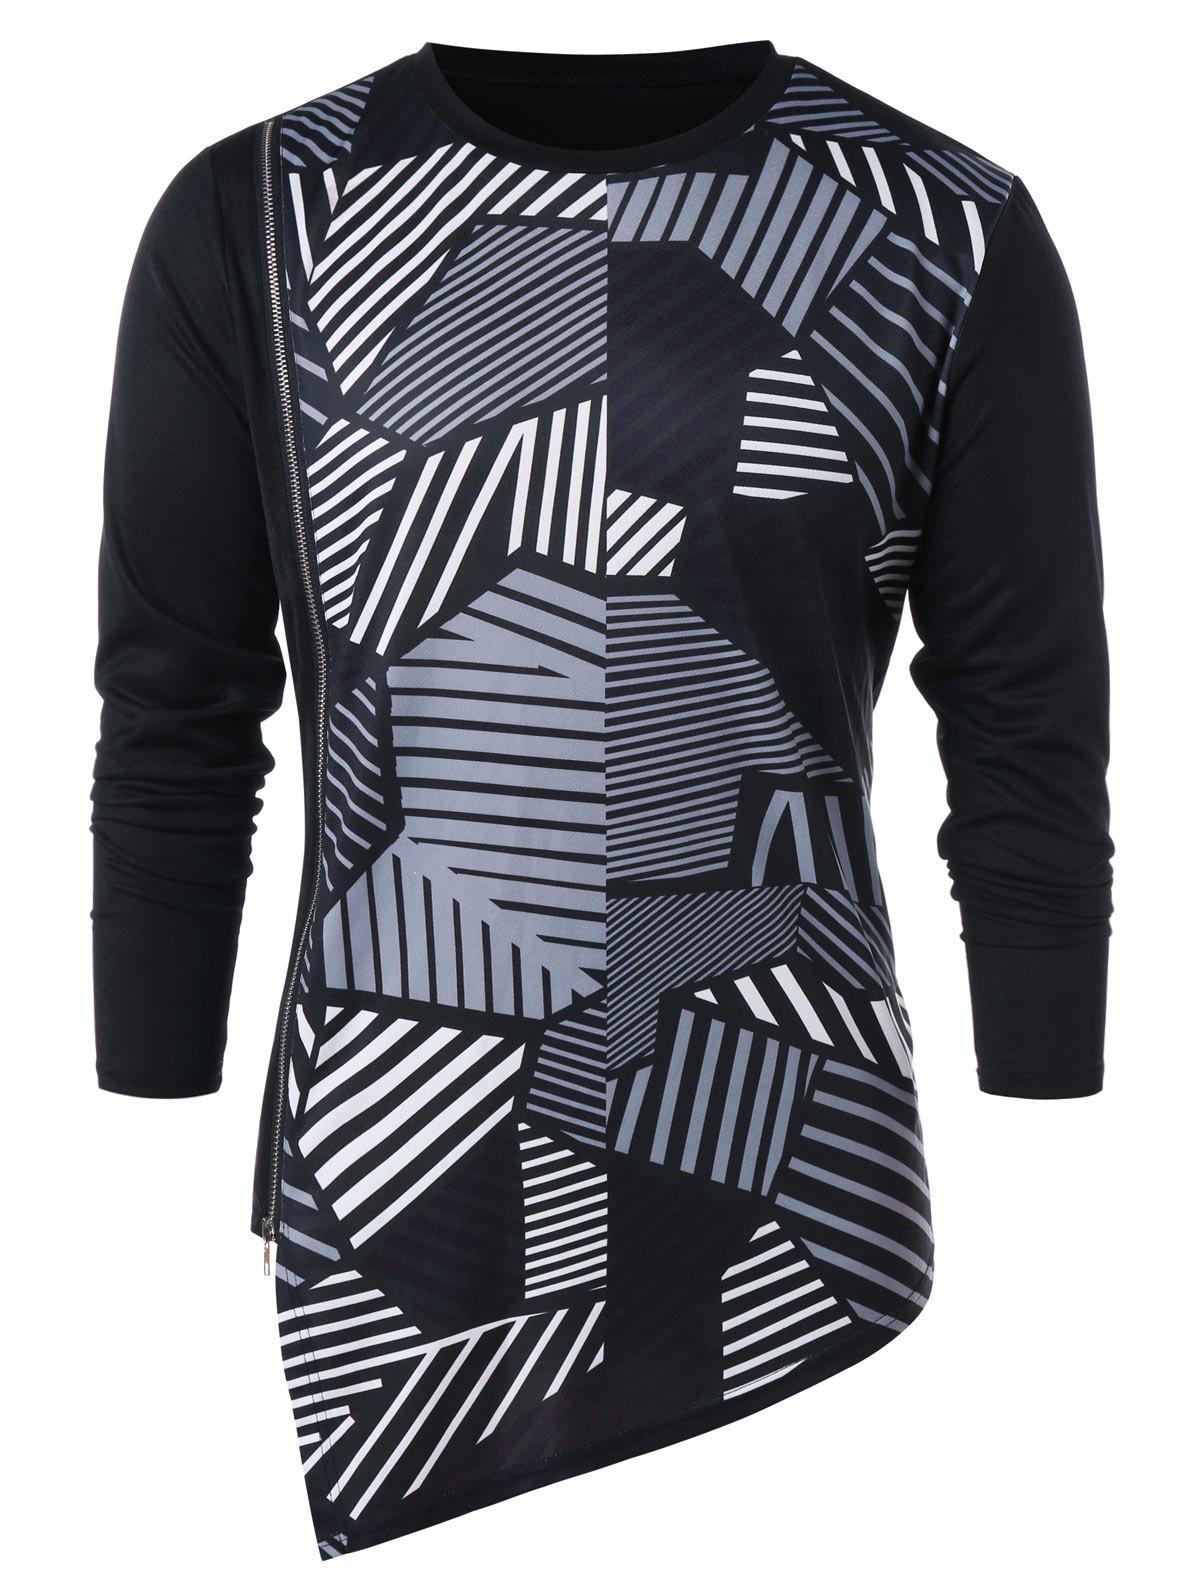 Shop Asymmetric Geometric Print Zipper Embellished T-shirt